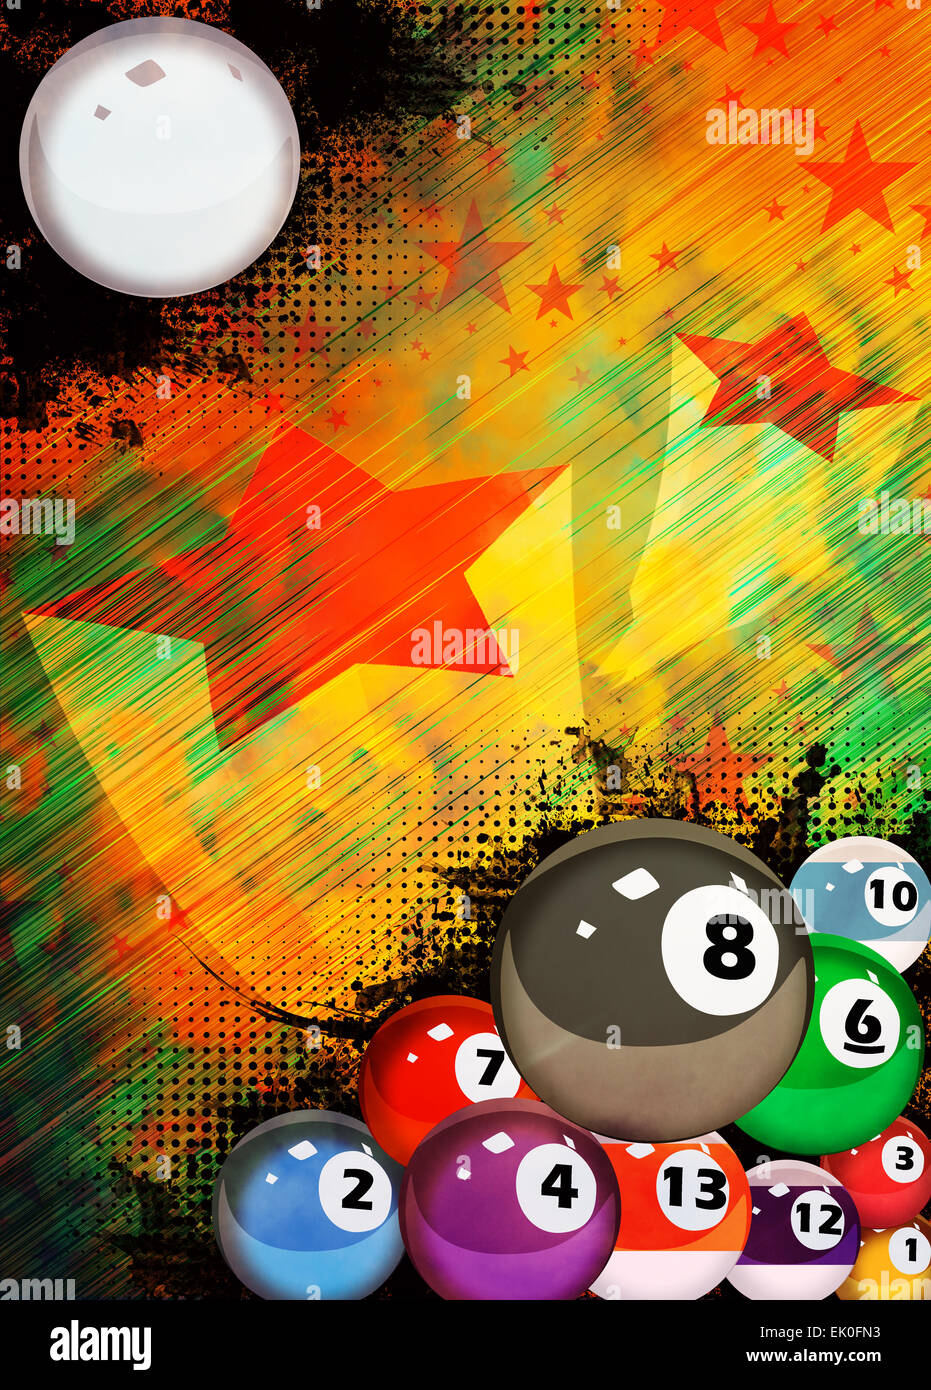 Abstract billiard invitation advert background with empty space - Stock Image